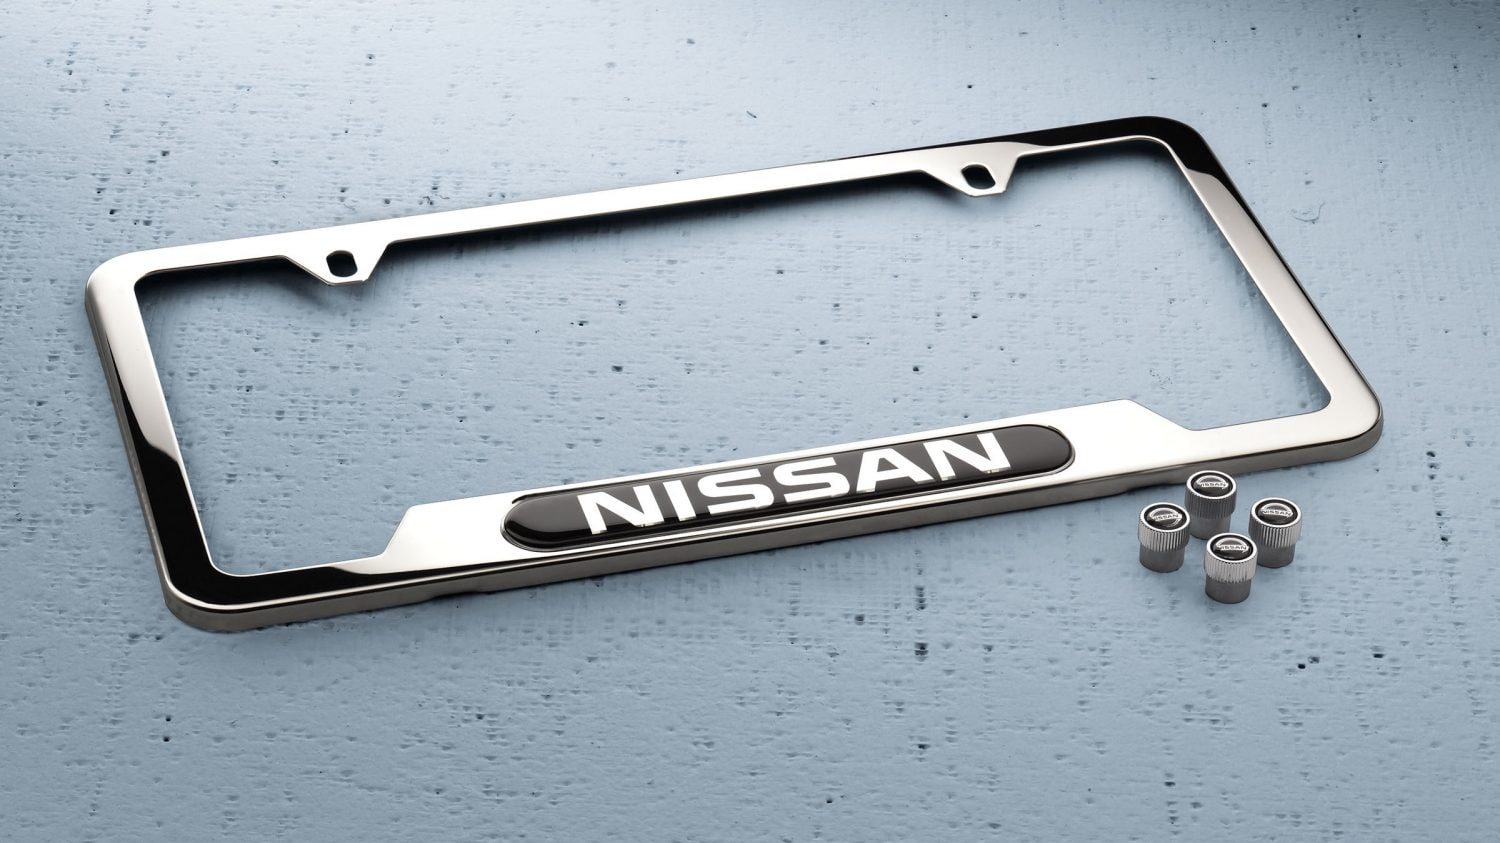 hight resolution of nissan chrome license plate frame and